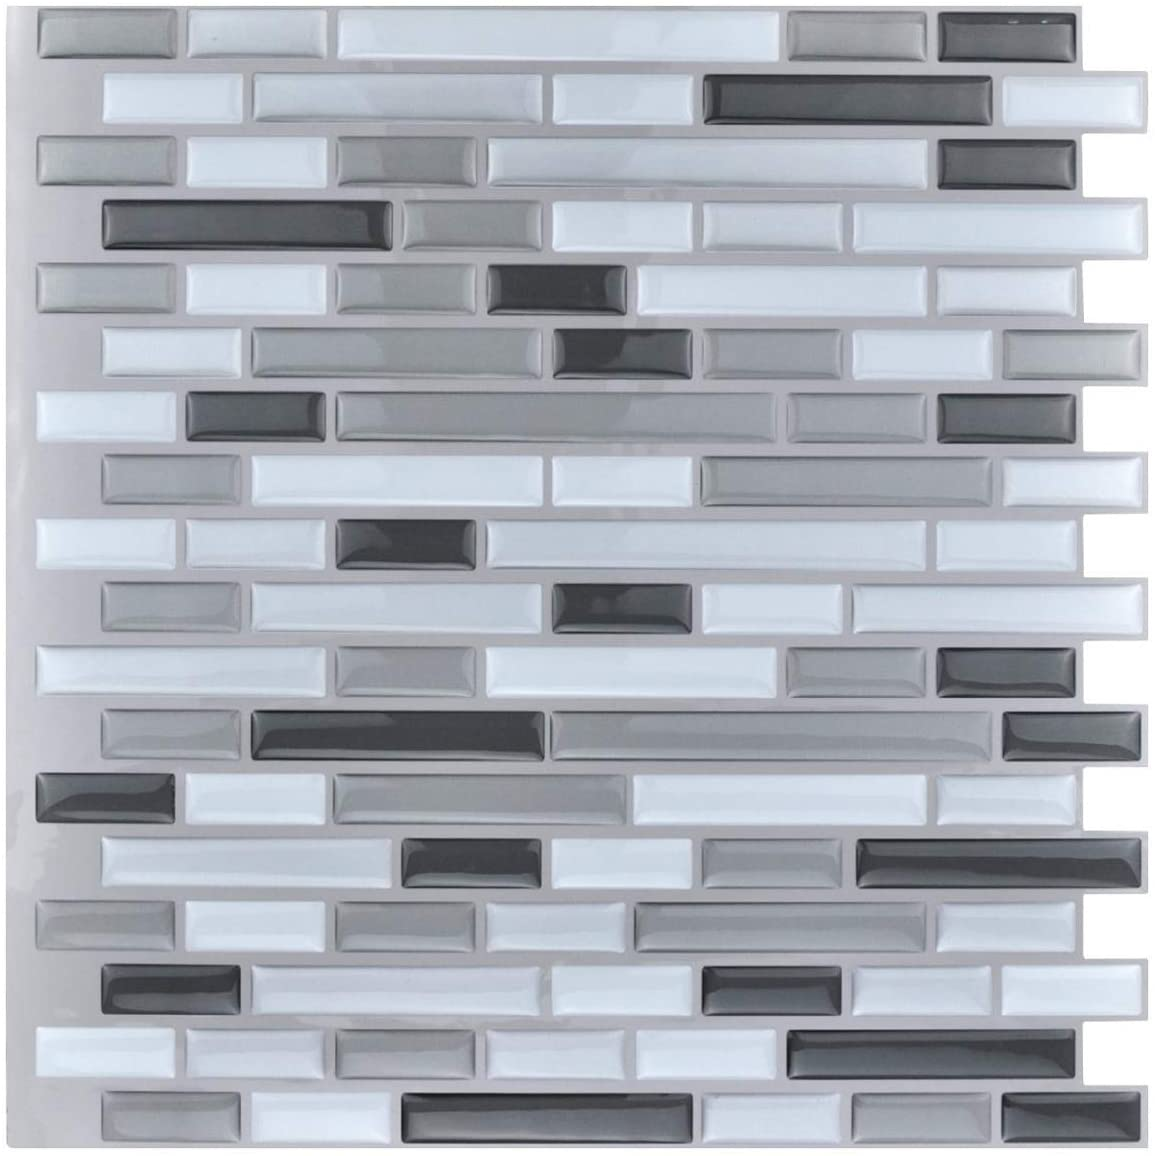 2020 New Product 3d Peel And Stick Tile Sticker Brick Waterproof 3D peelable tiles Wallpaper For Home Decoration